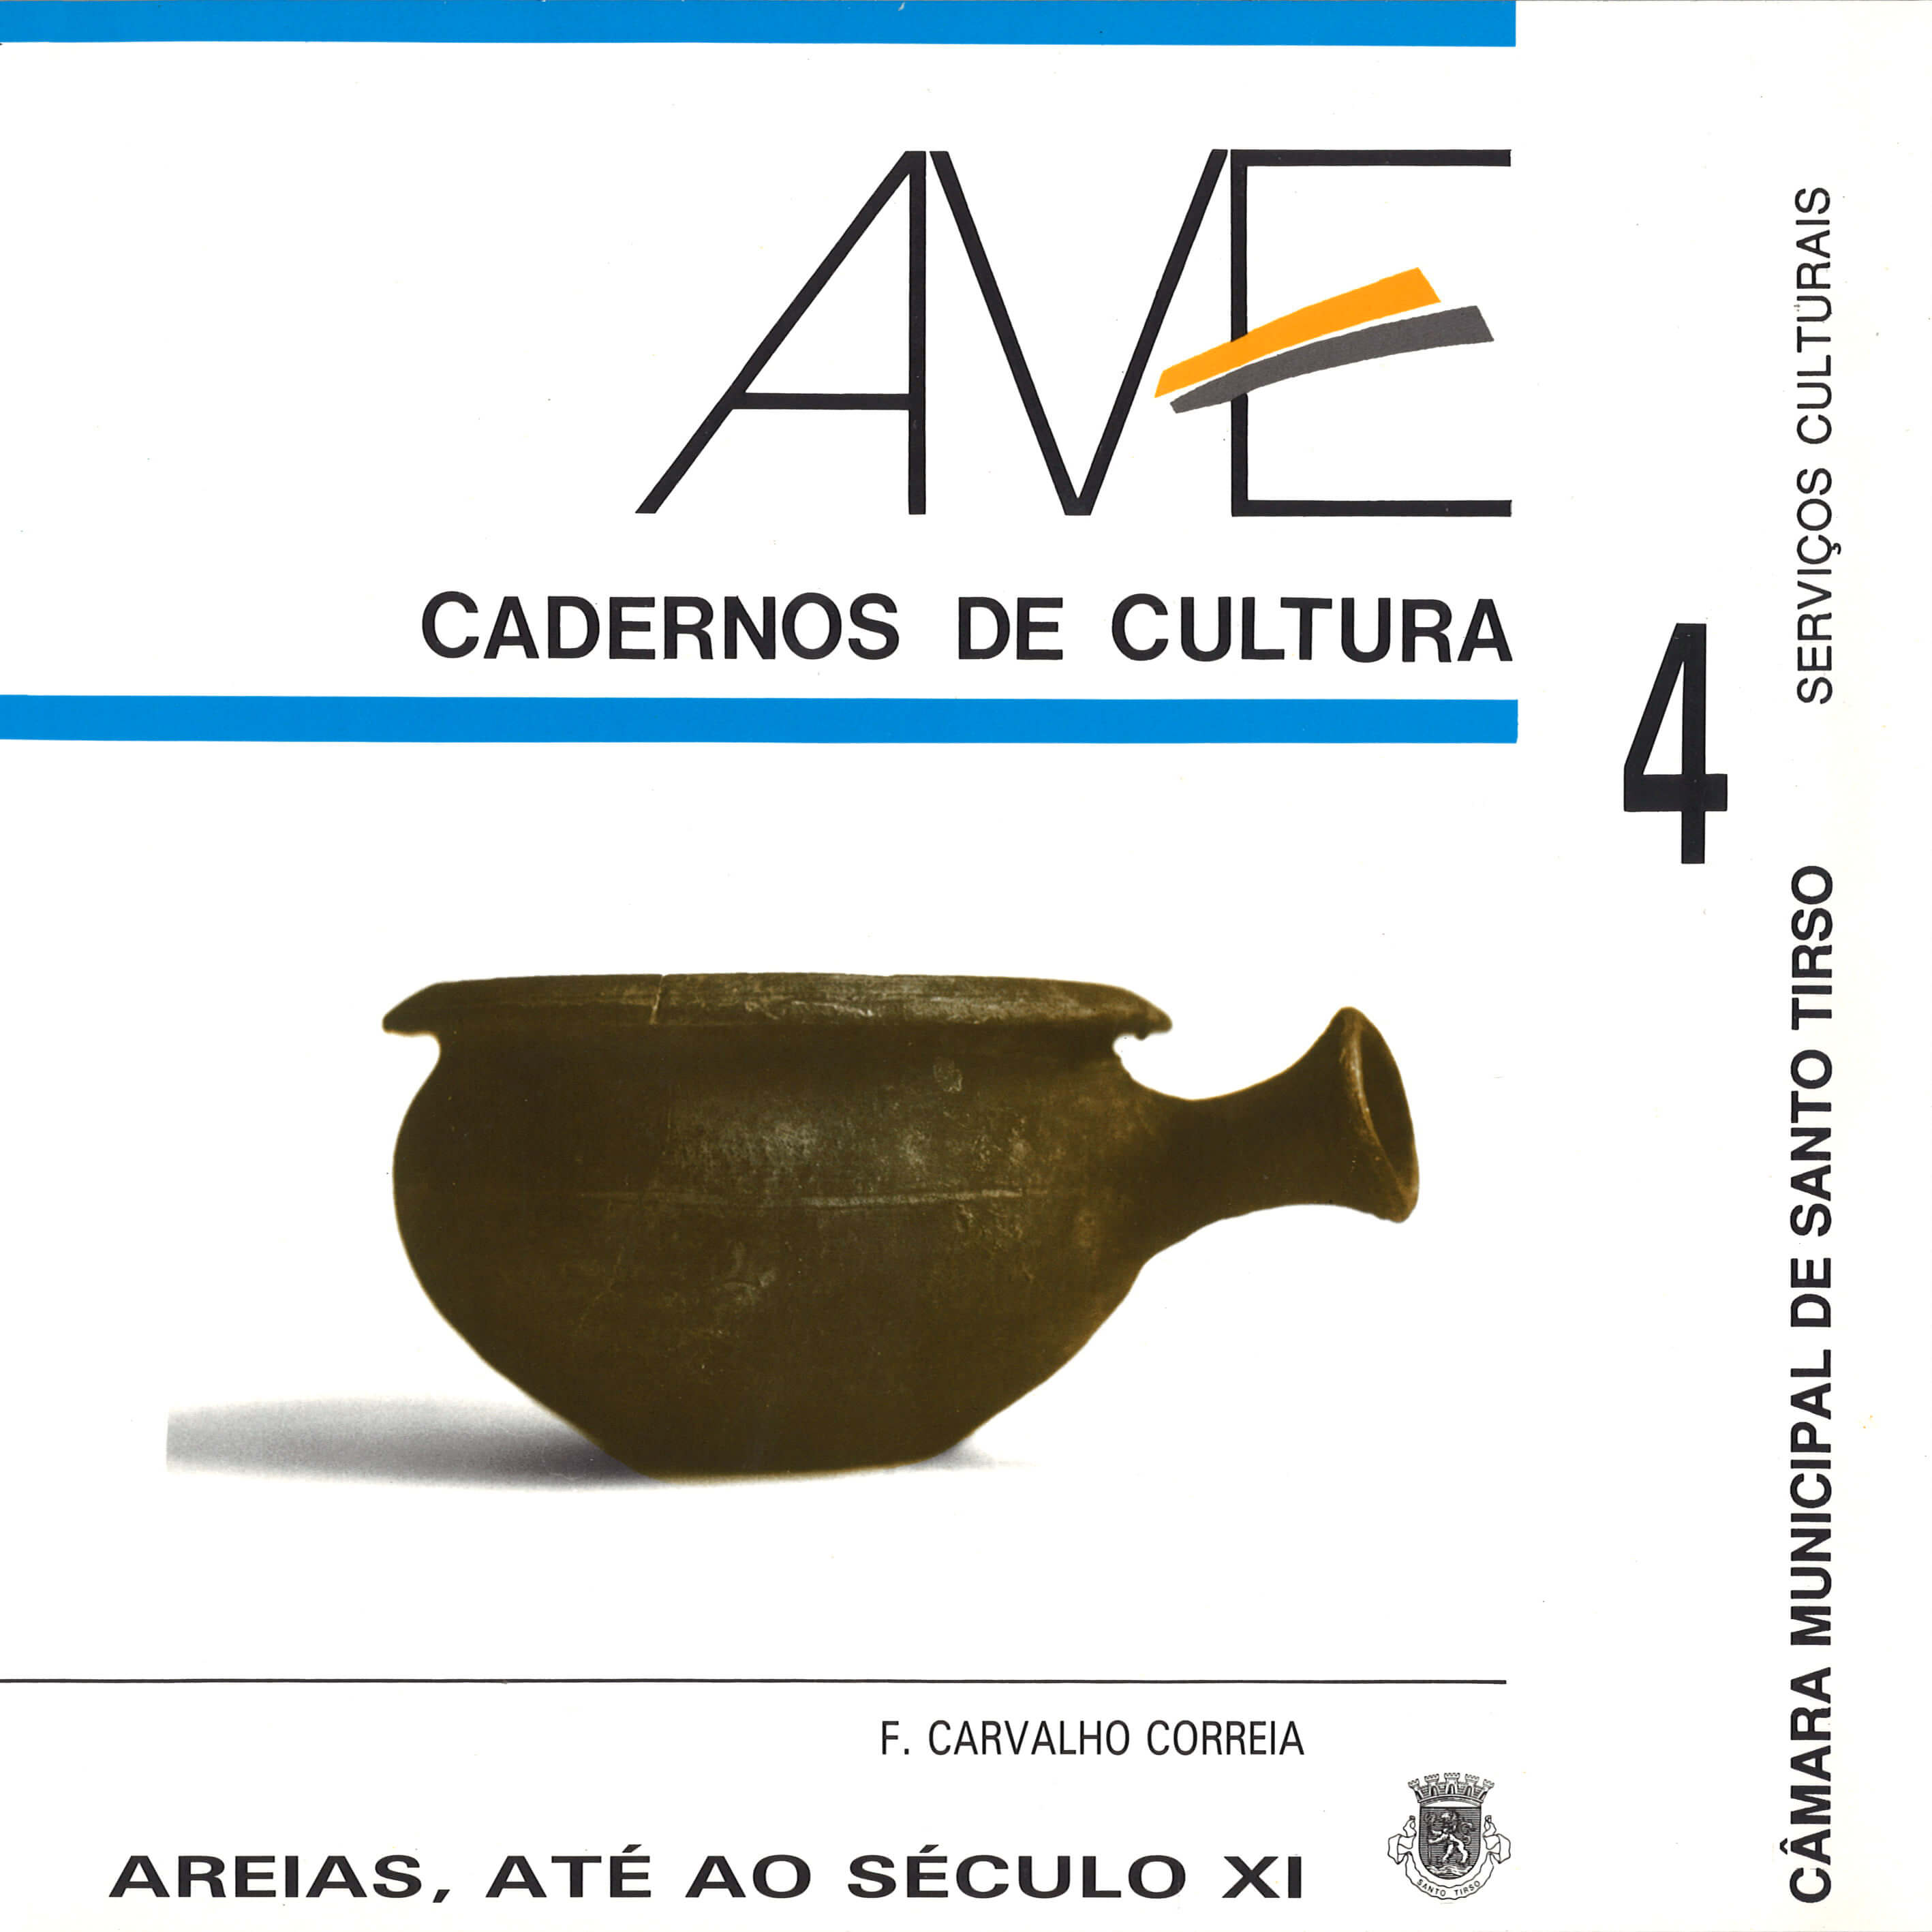 Cadernos do Ave nº4